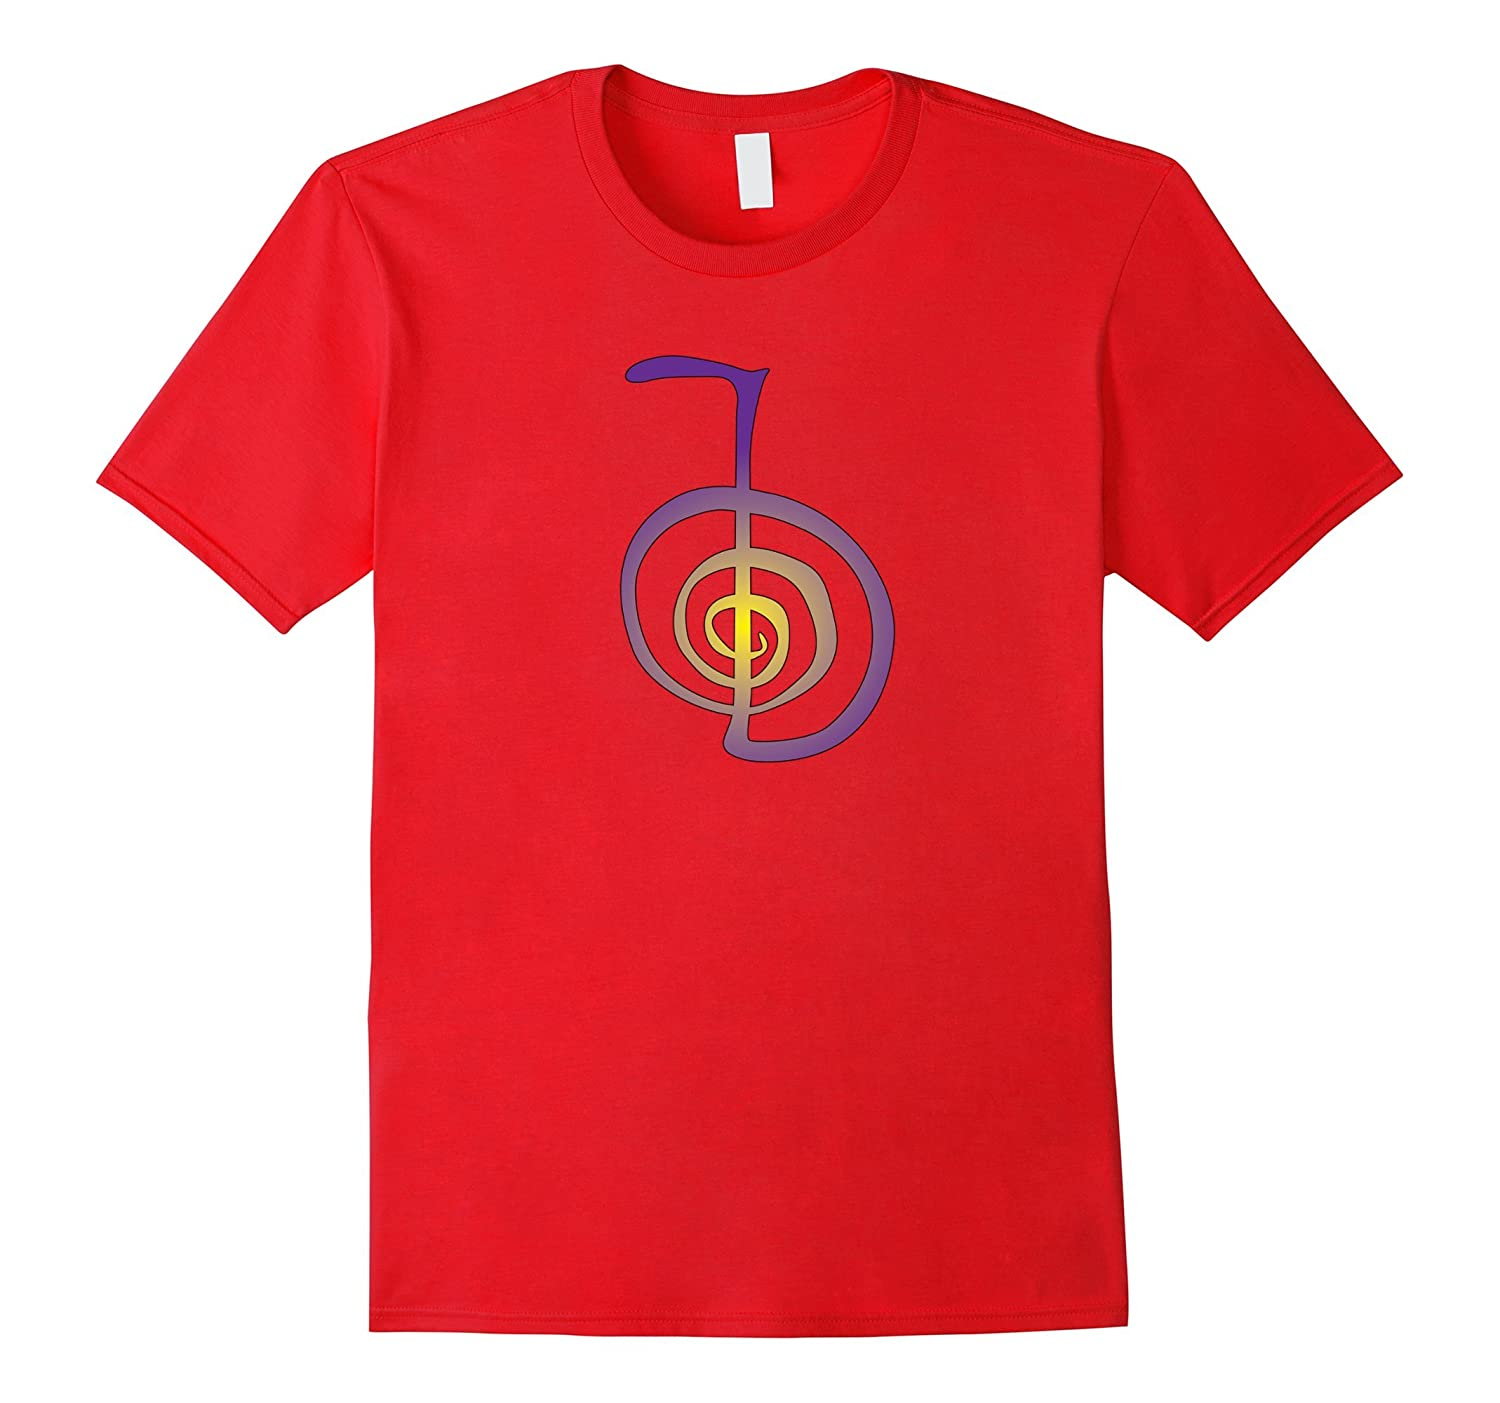 Vibrant Reiki Choku Rei Best Selling T-Shirt for the Family-TD